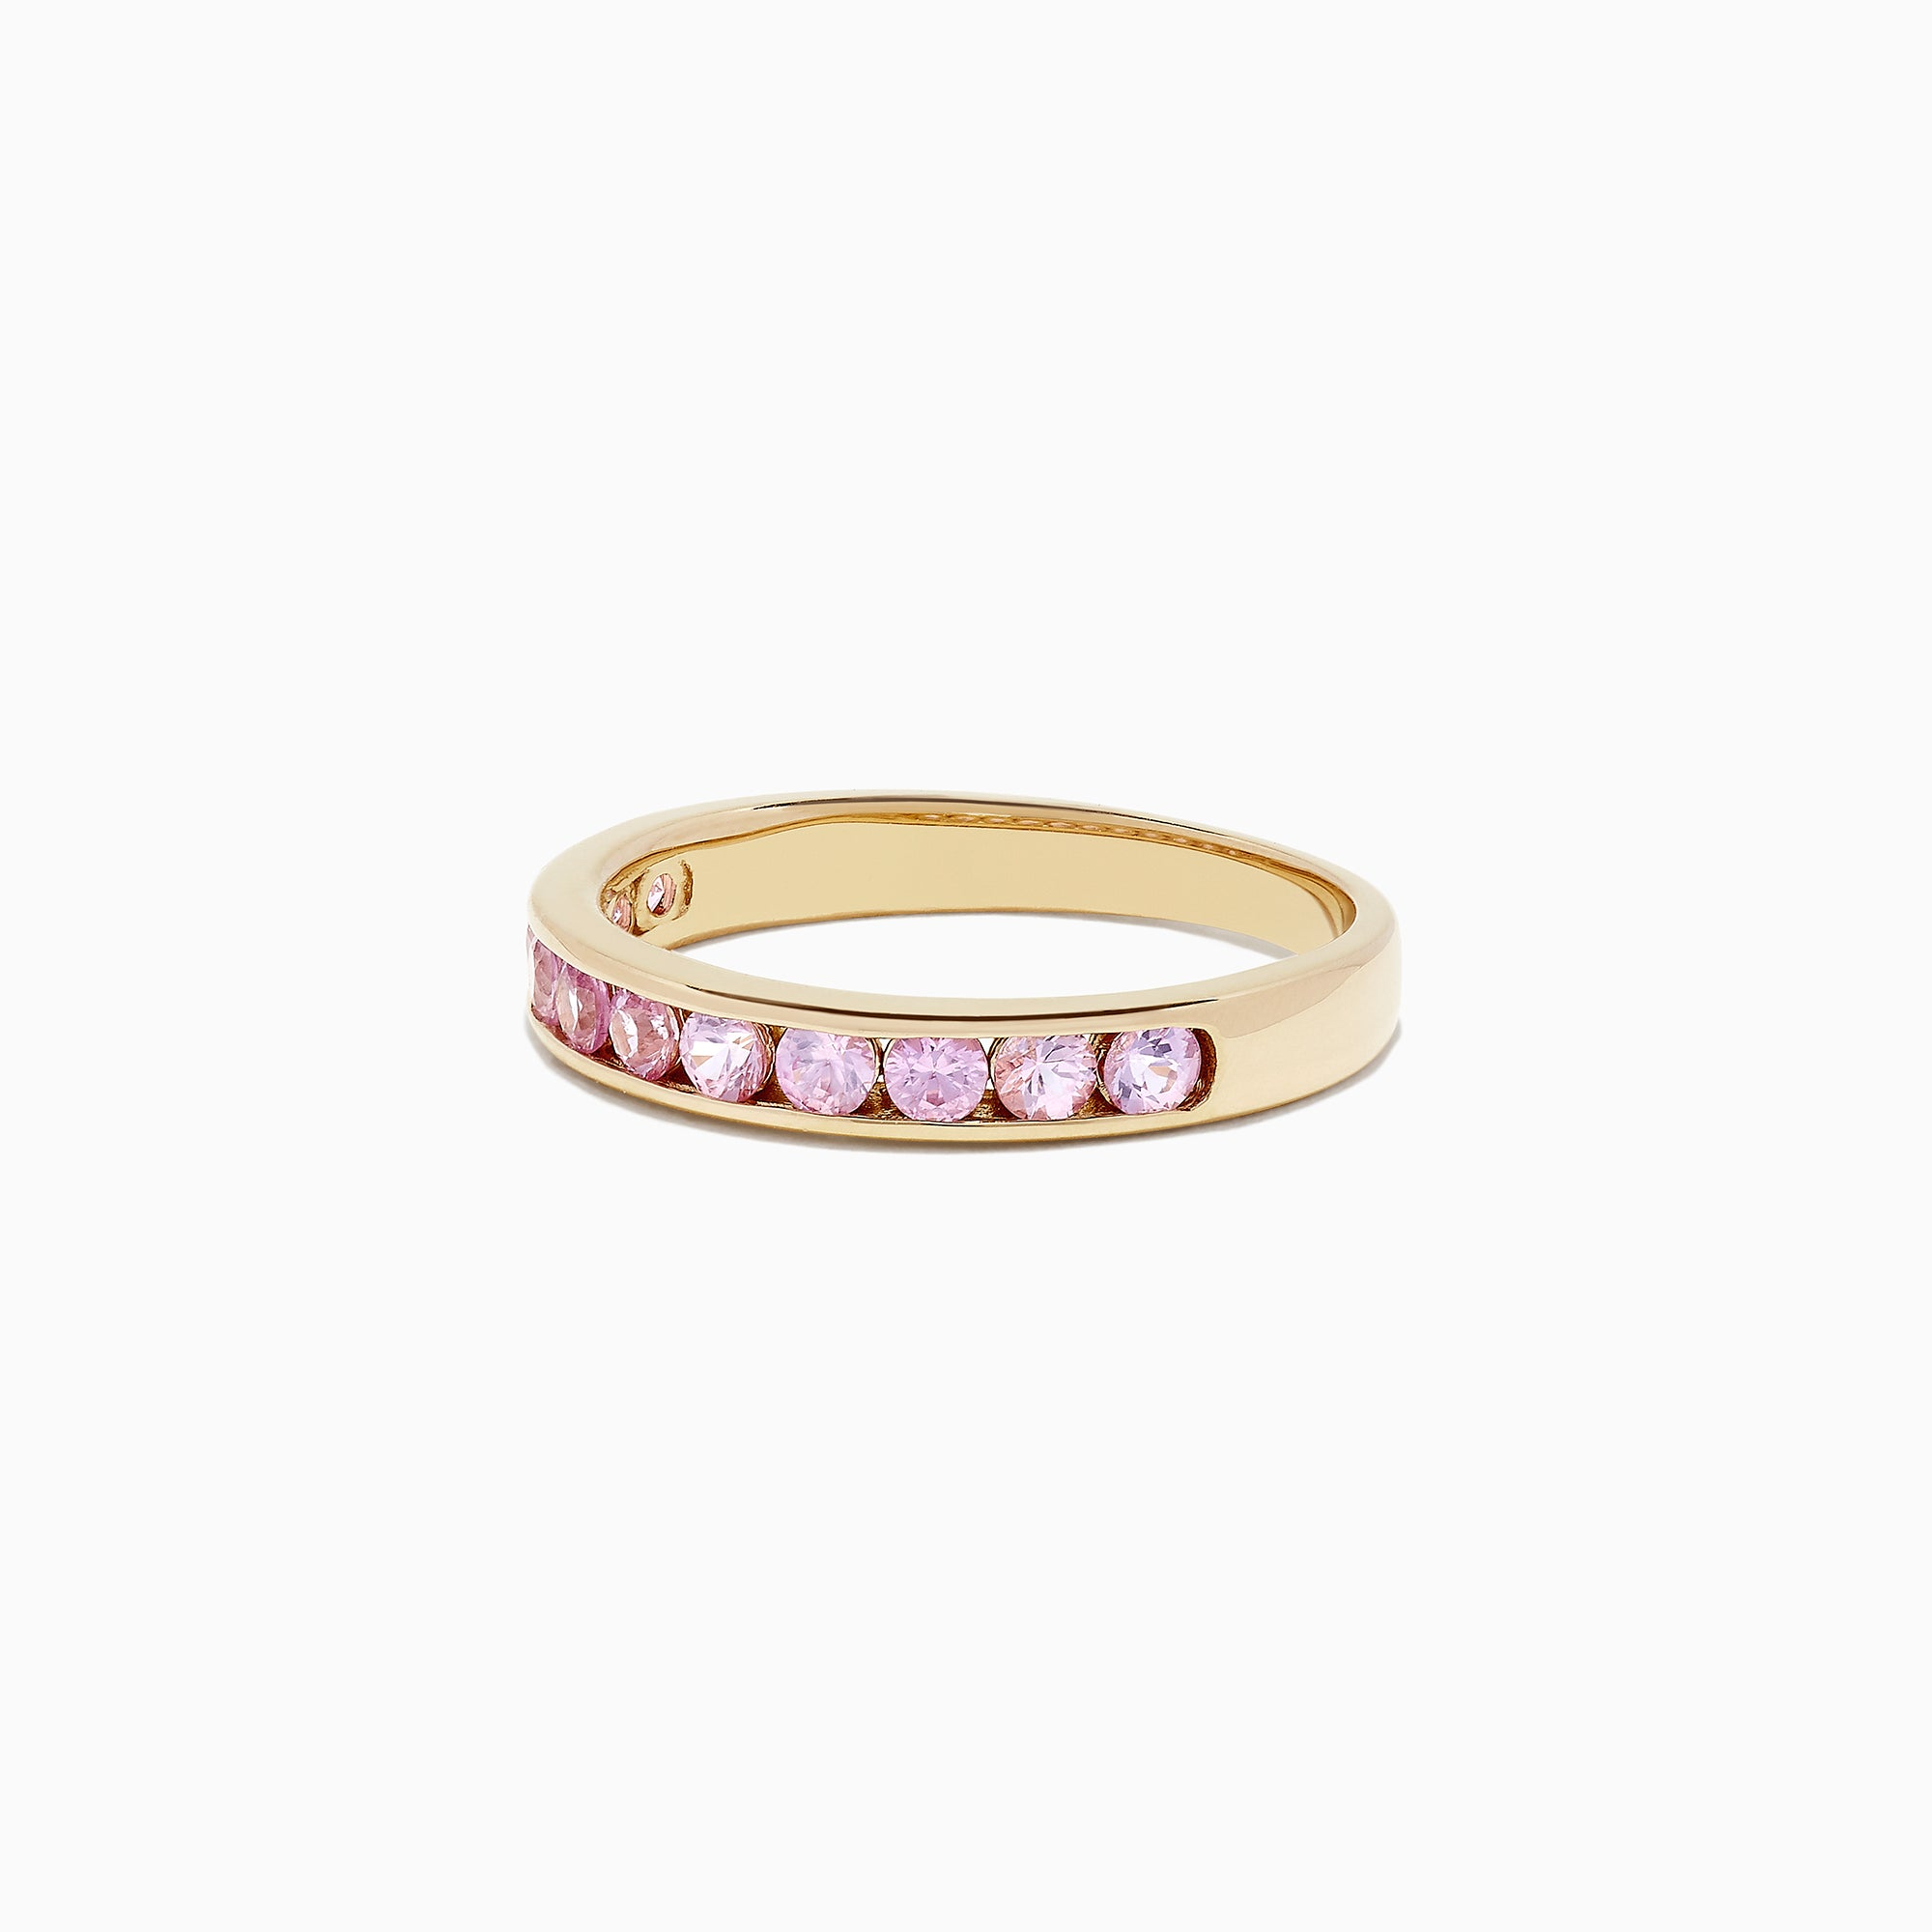 Effy 14K Yellow Gold Channel Set Pink Sapphire Ring, 0.84 TCW